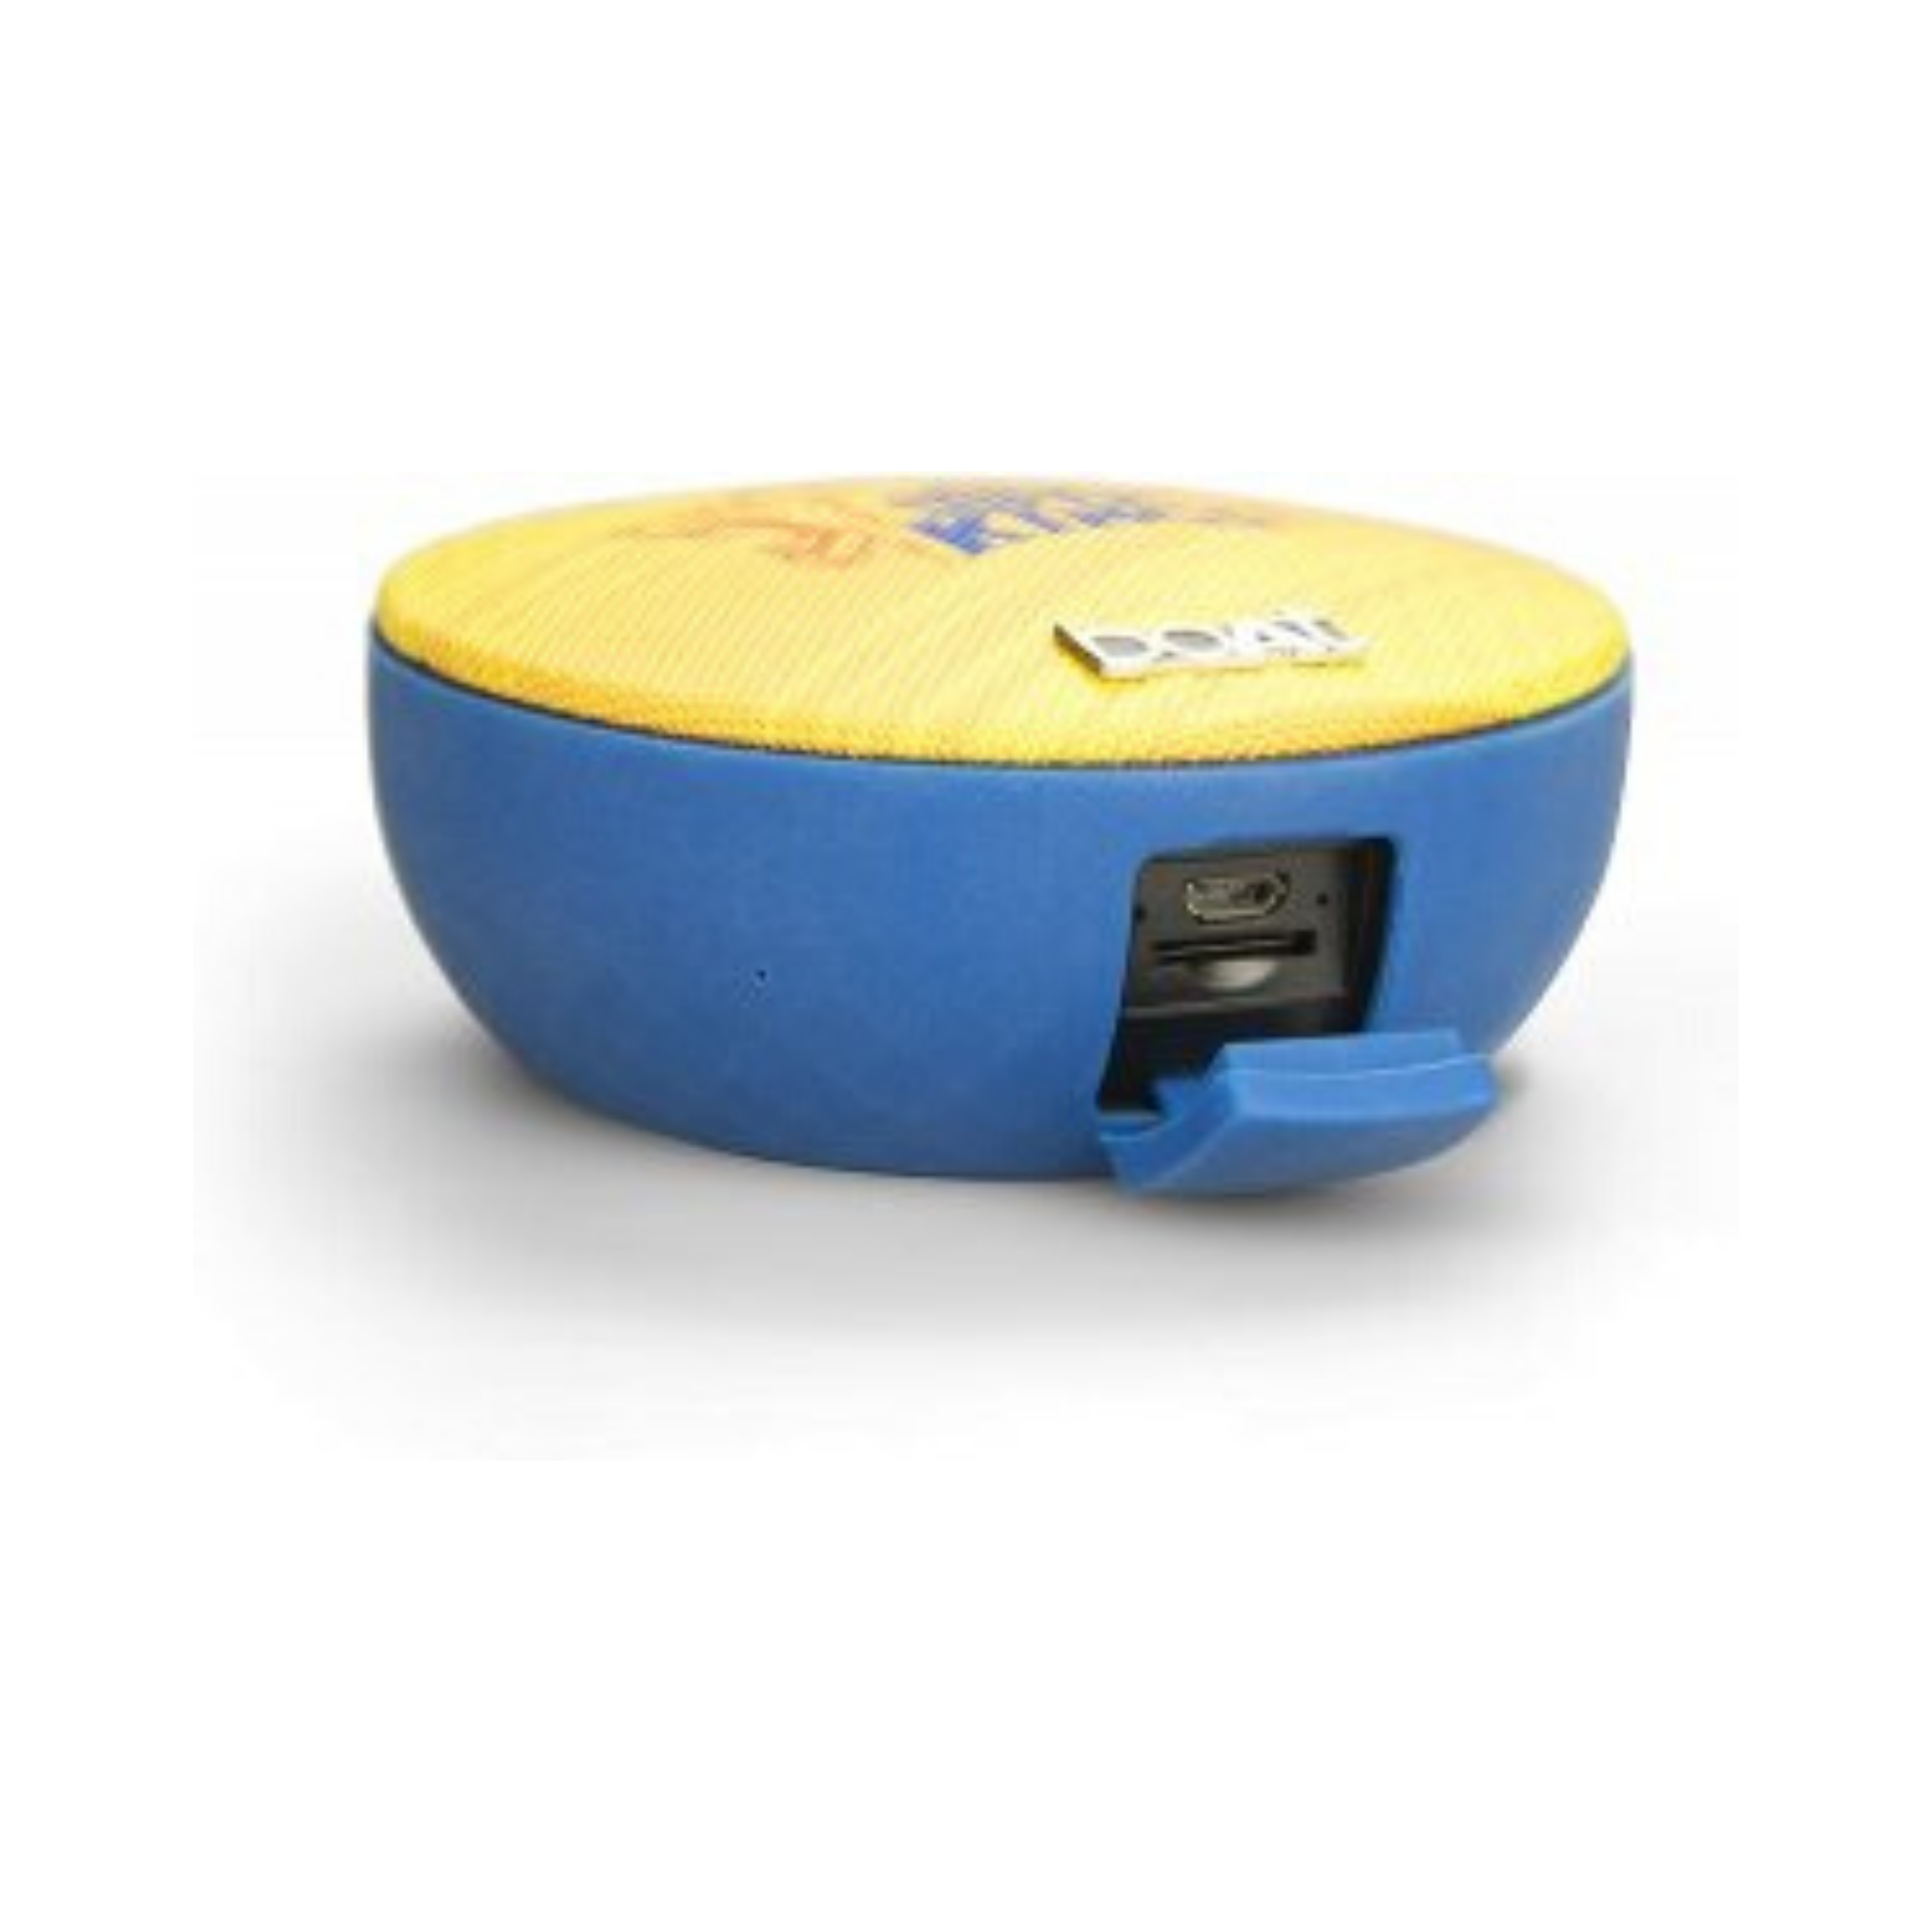 boAt Chennai Super Kings Edition Stone 260 Portable Bluetooth Speaker (Yellow)